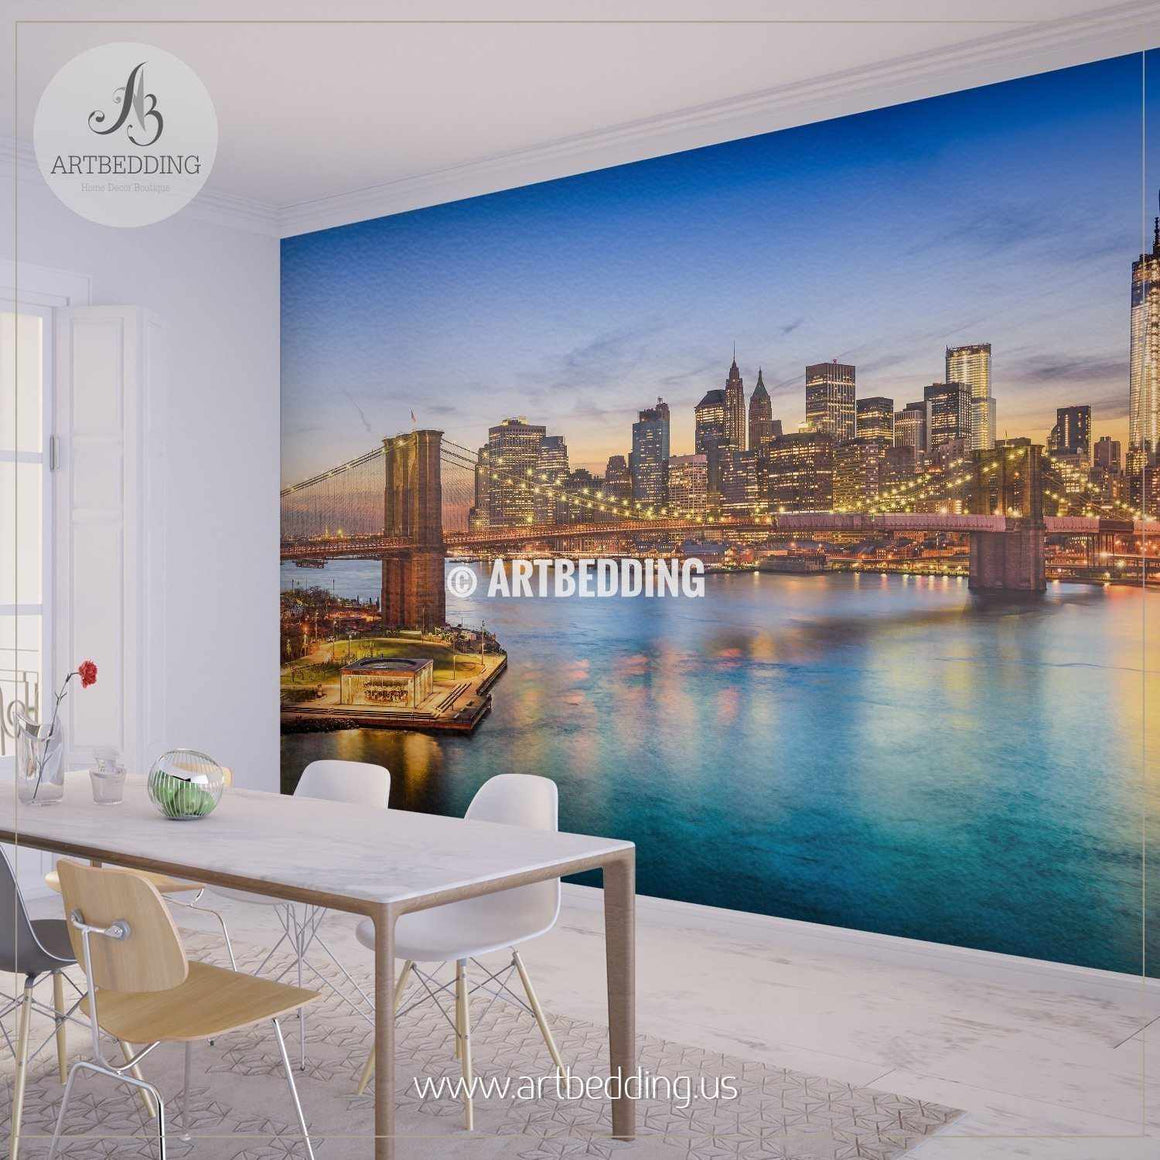 Brooklyn Bridge in New York City Wall Mural, Landmarks Photo Mural, Cityscape photo mural wall mural